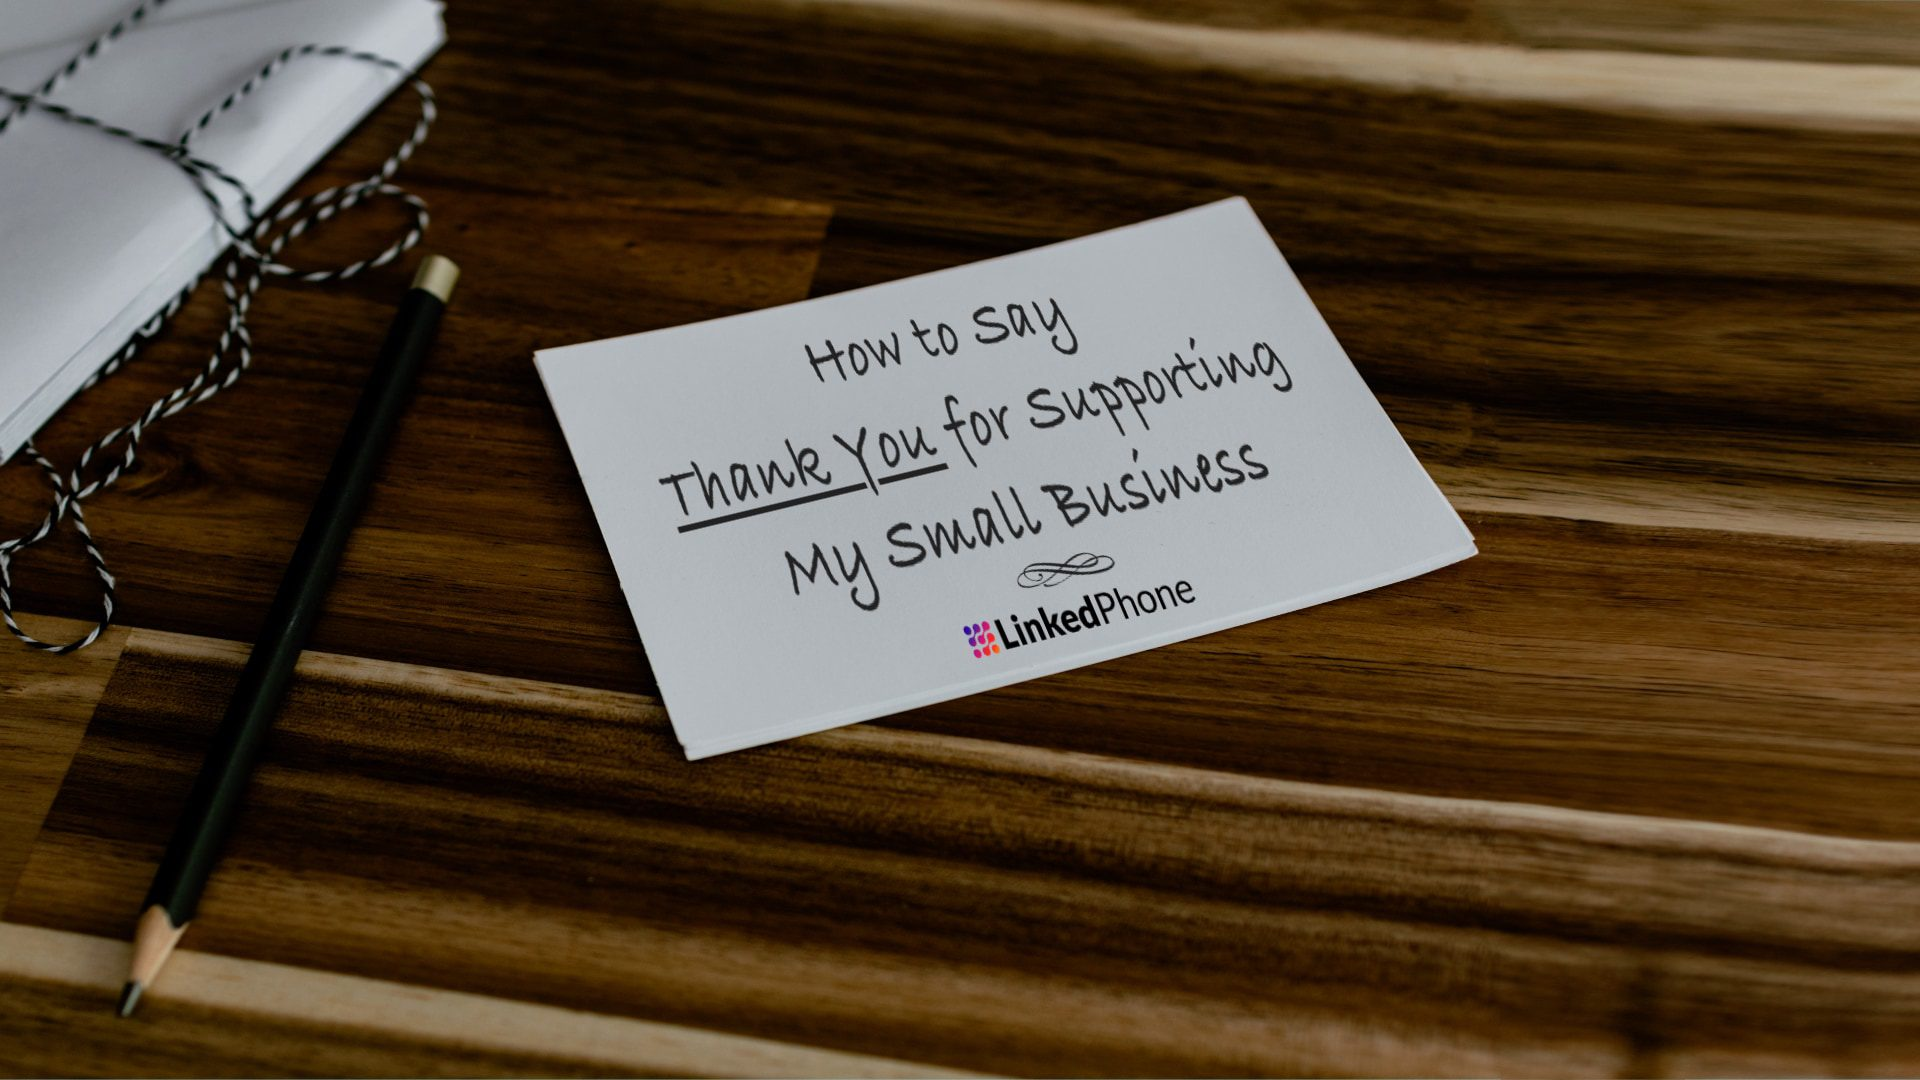 Handwritten Note on Desk with the words